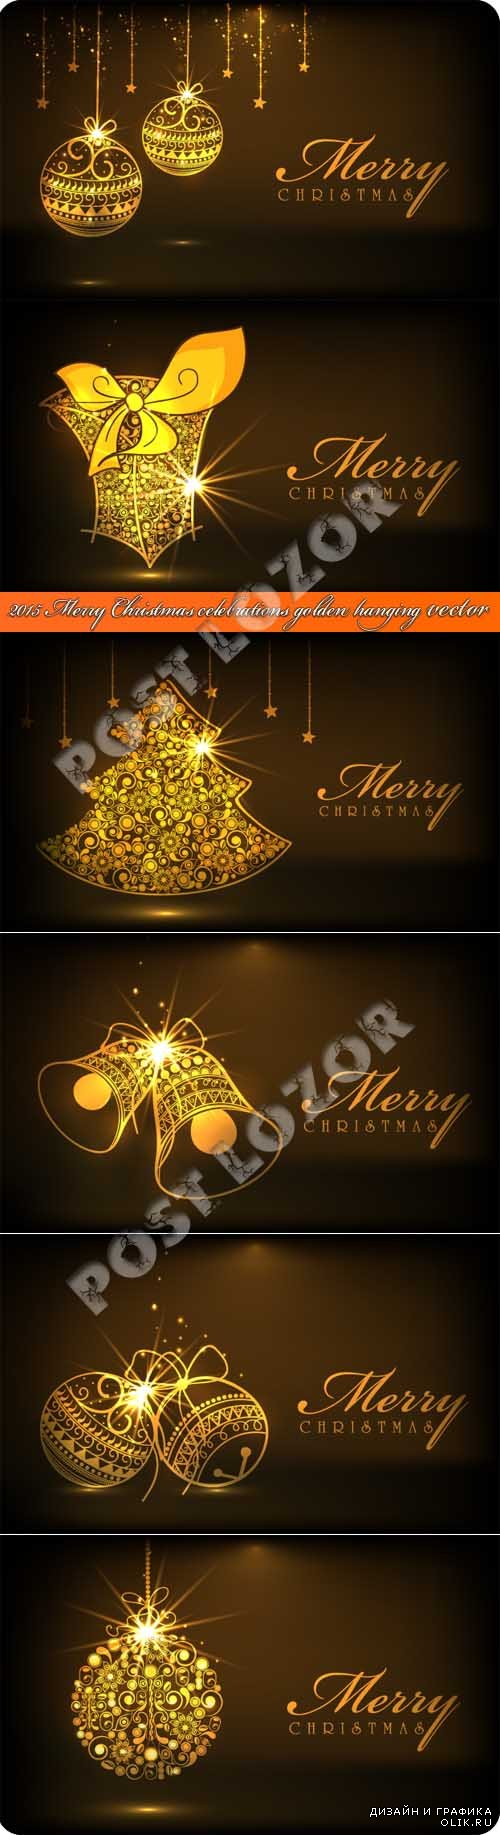 2015 Merry Christmas celebrations golden hanging vector